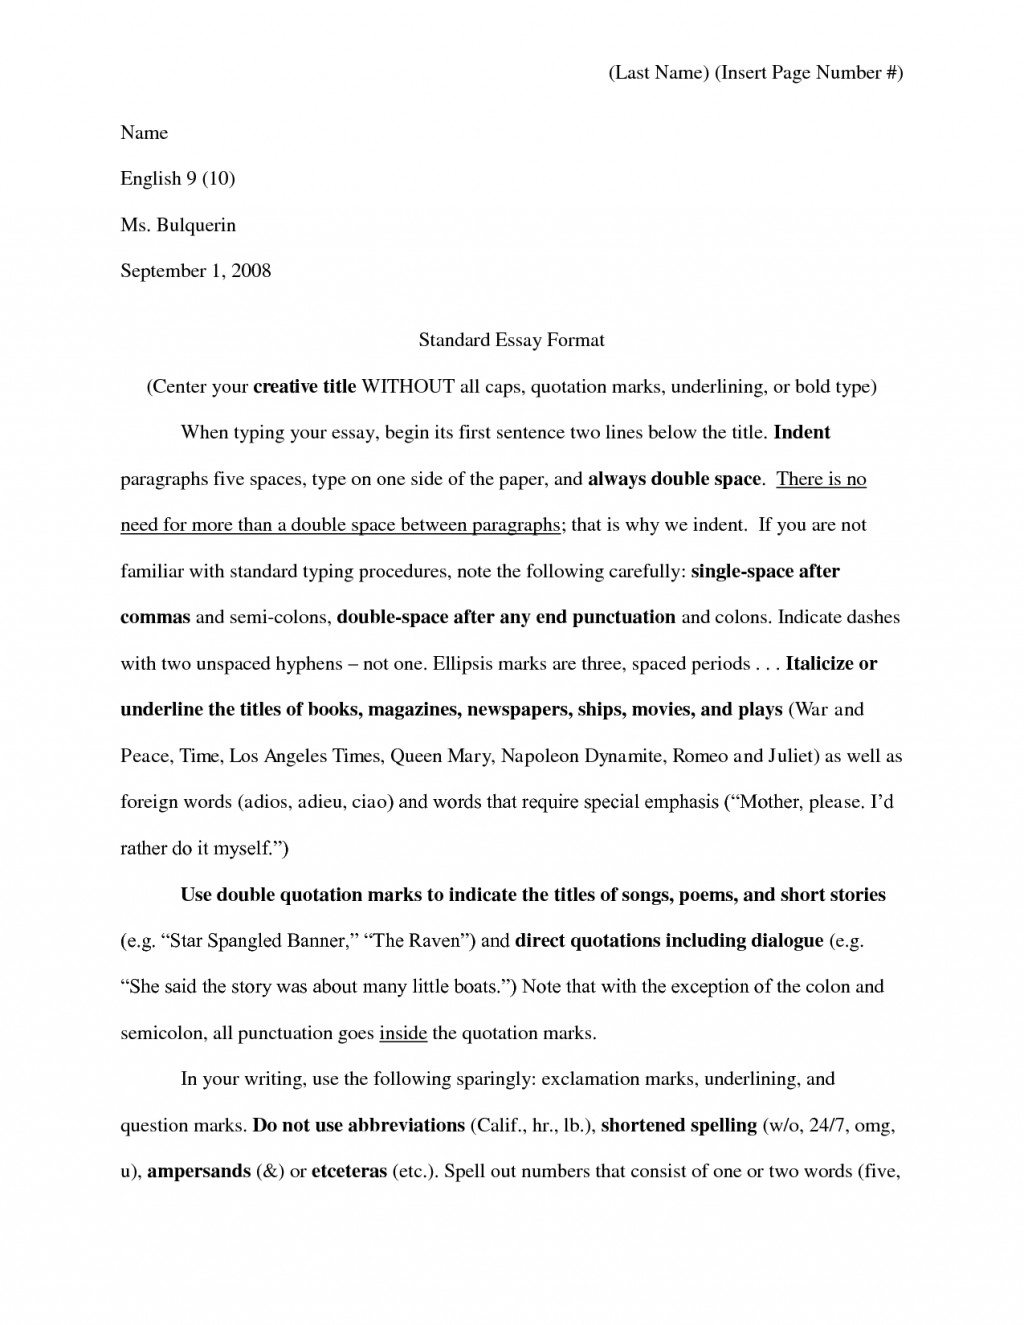 012 Essay Example Ama Best Format Large